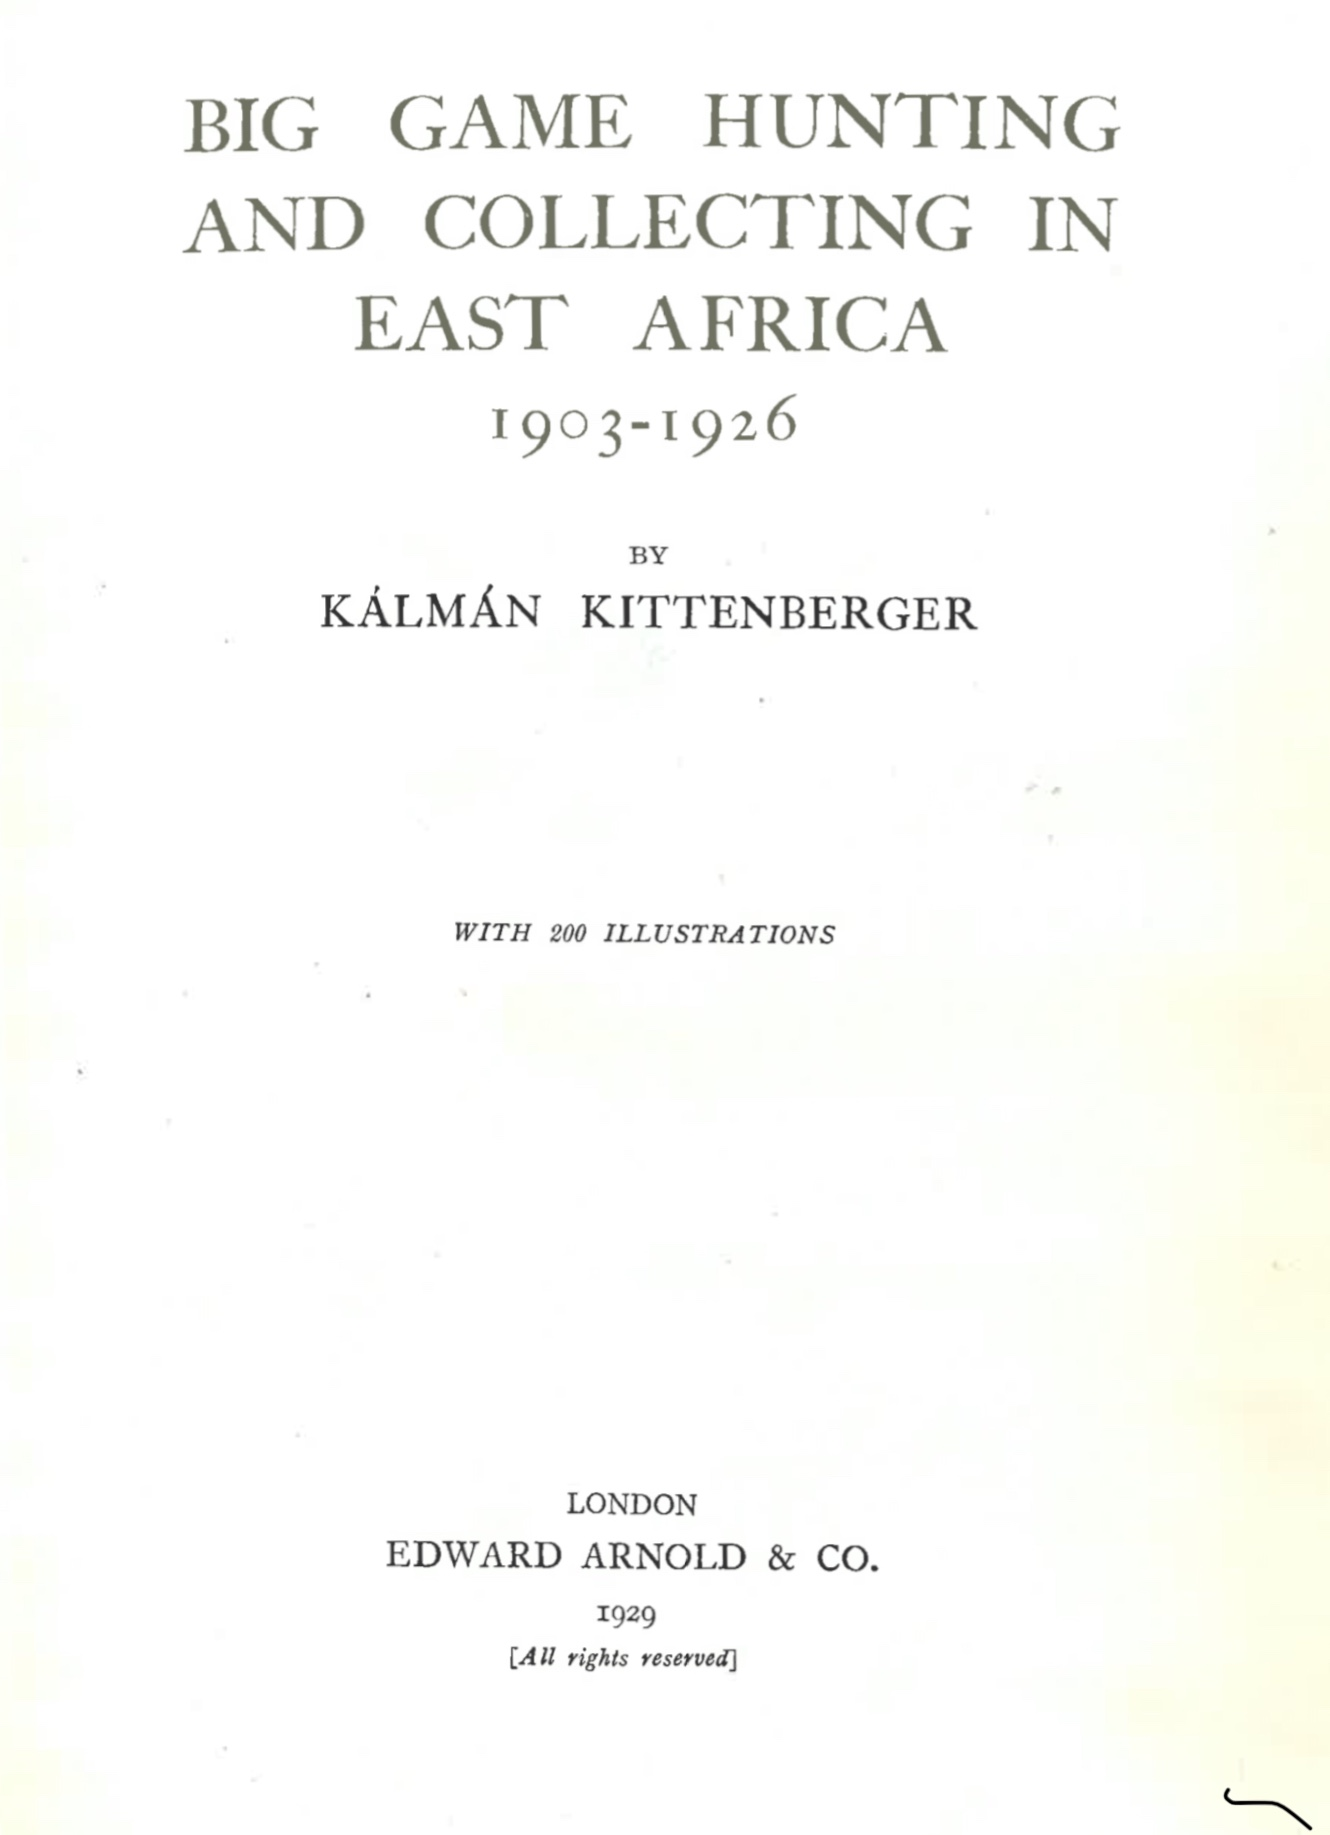 Big game hunting and collecting in East Africa, 1903–1926, London, Arnold, 1929. – Törzsgyűjtemény